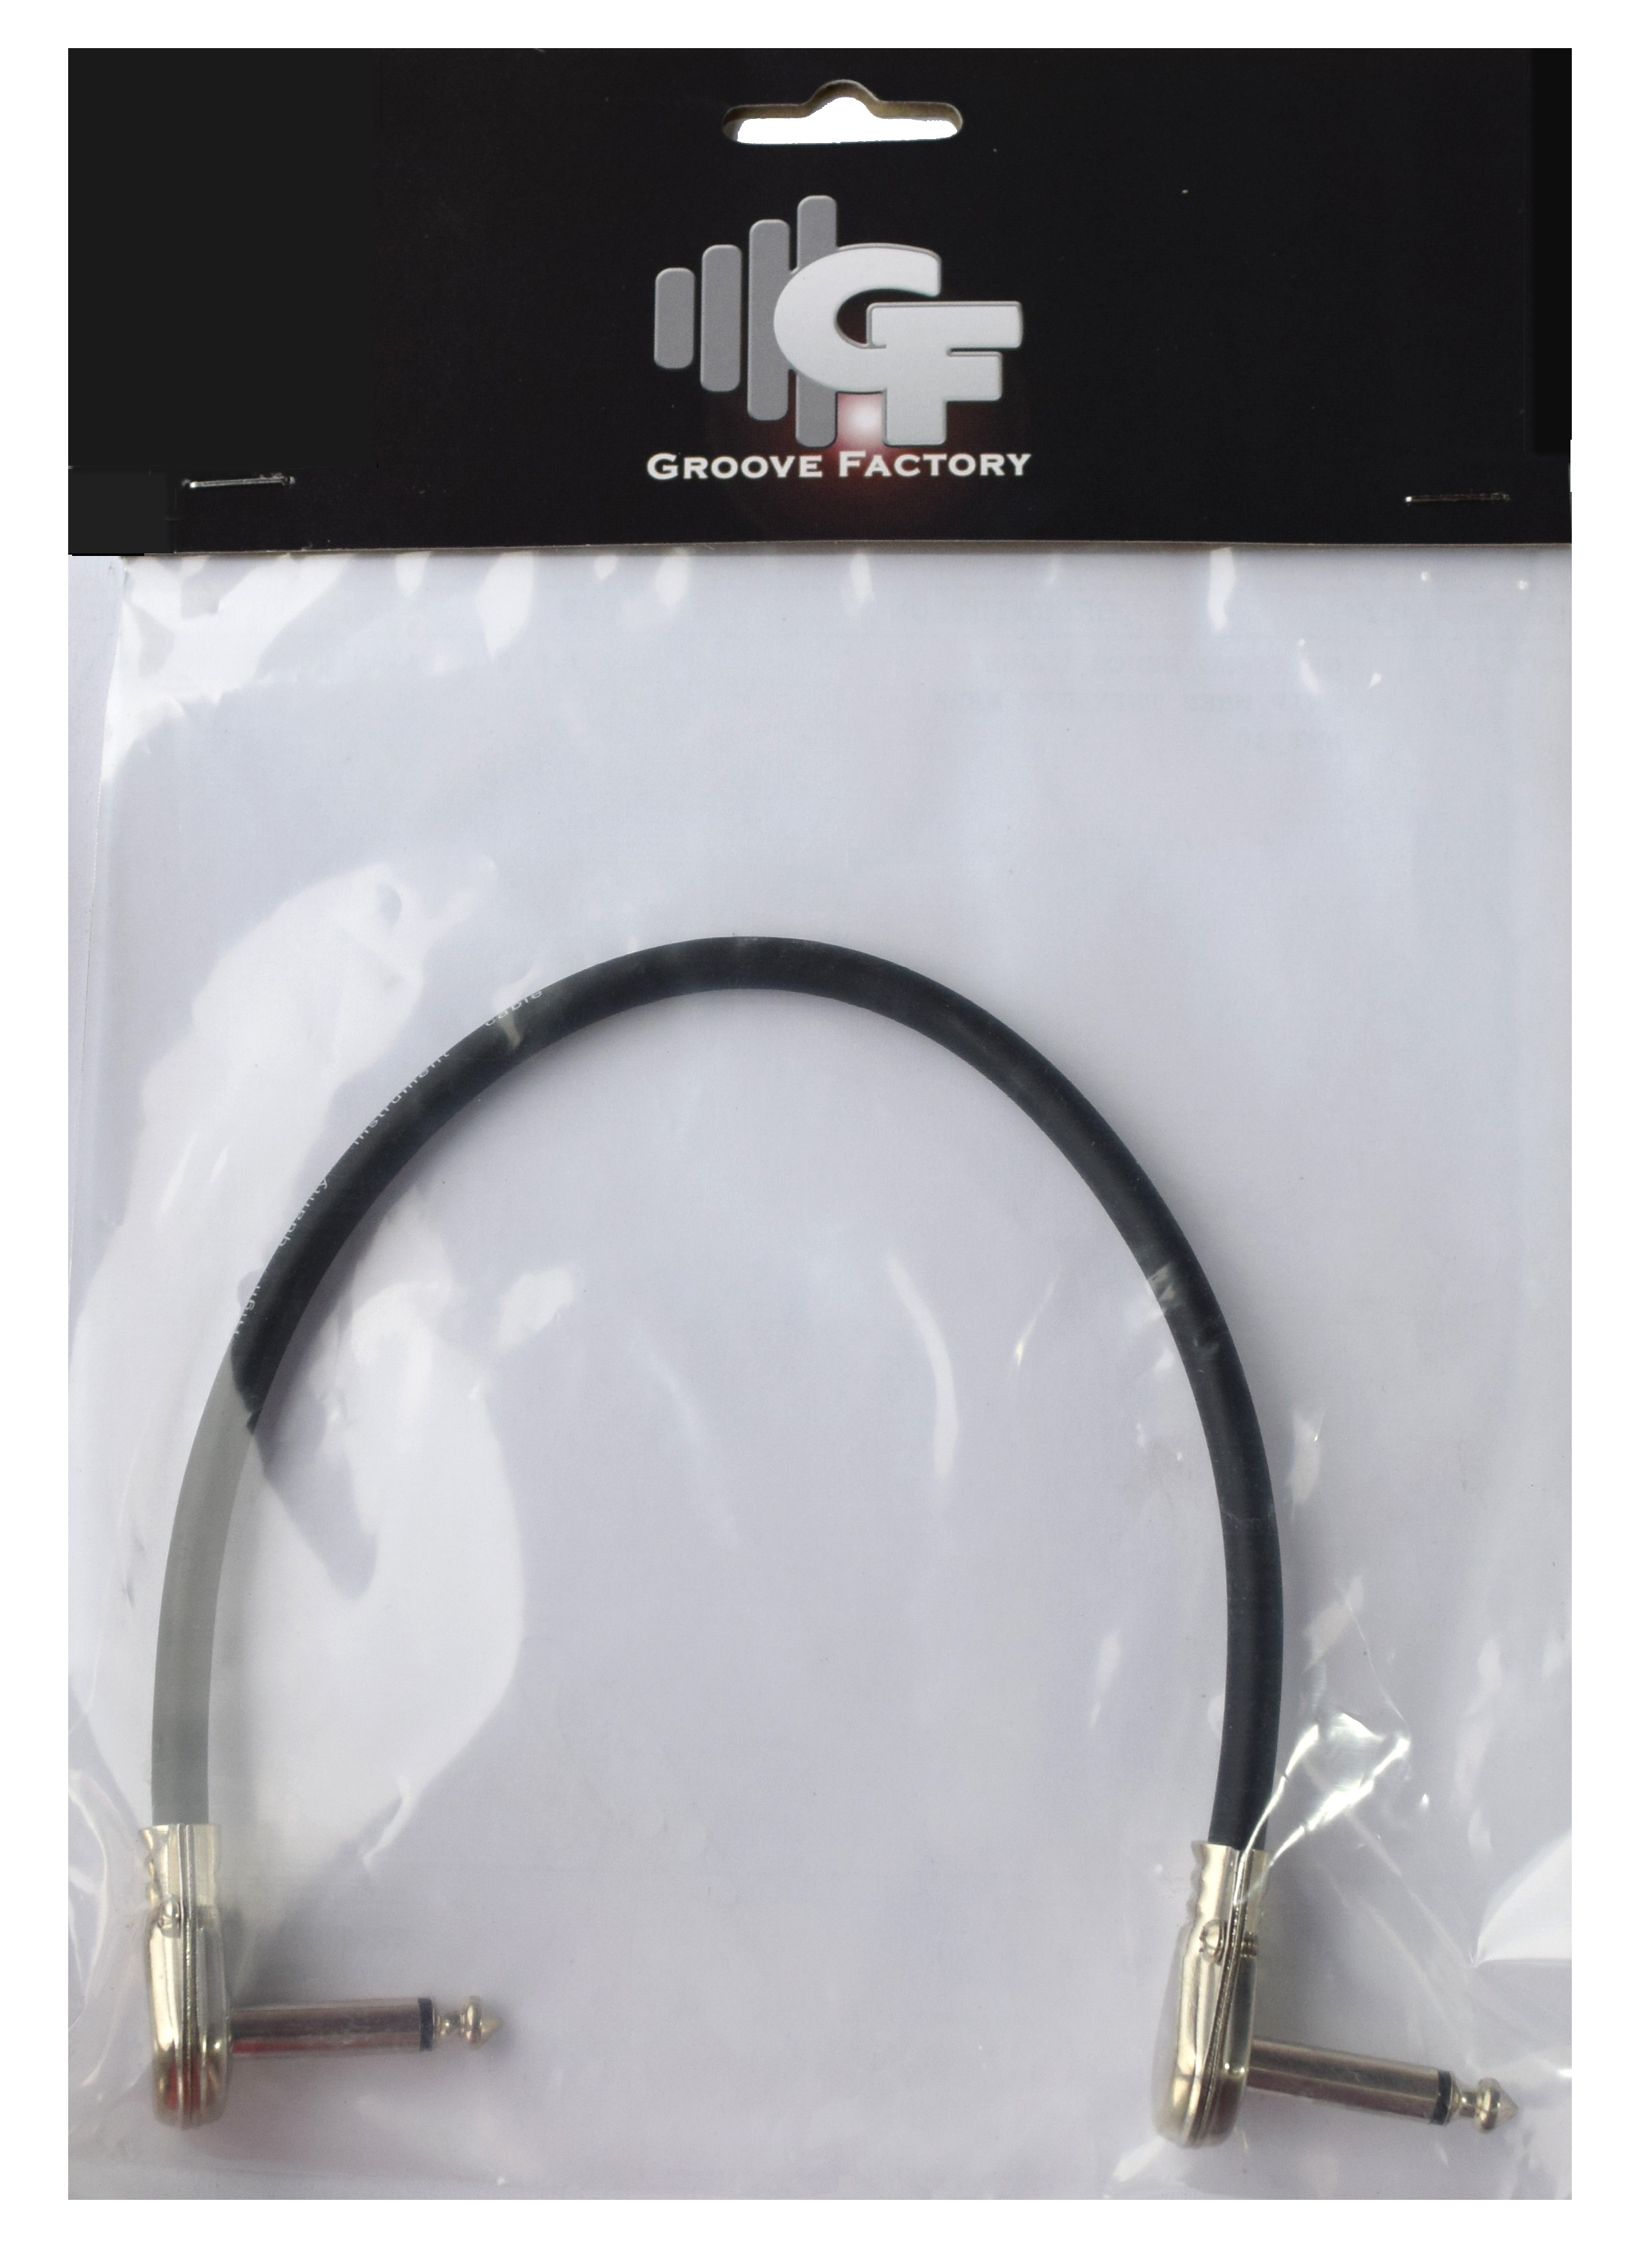 *NEW* GROOVE FACTORY FLAT CABLE - 12 INCH